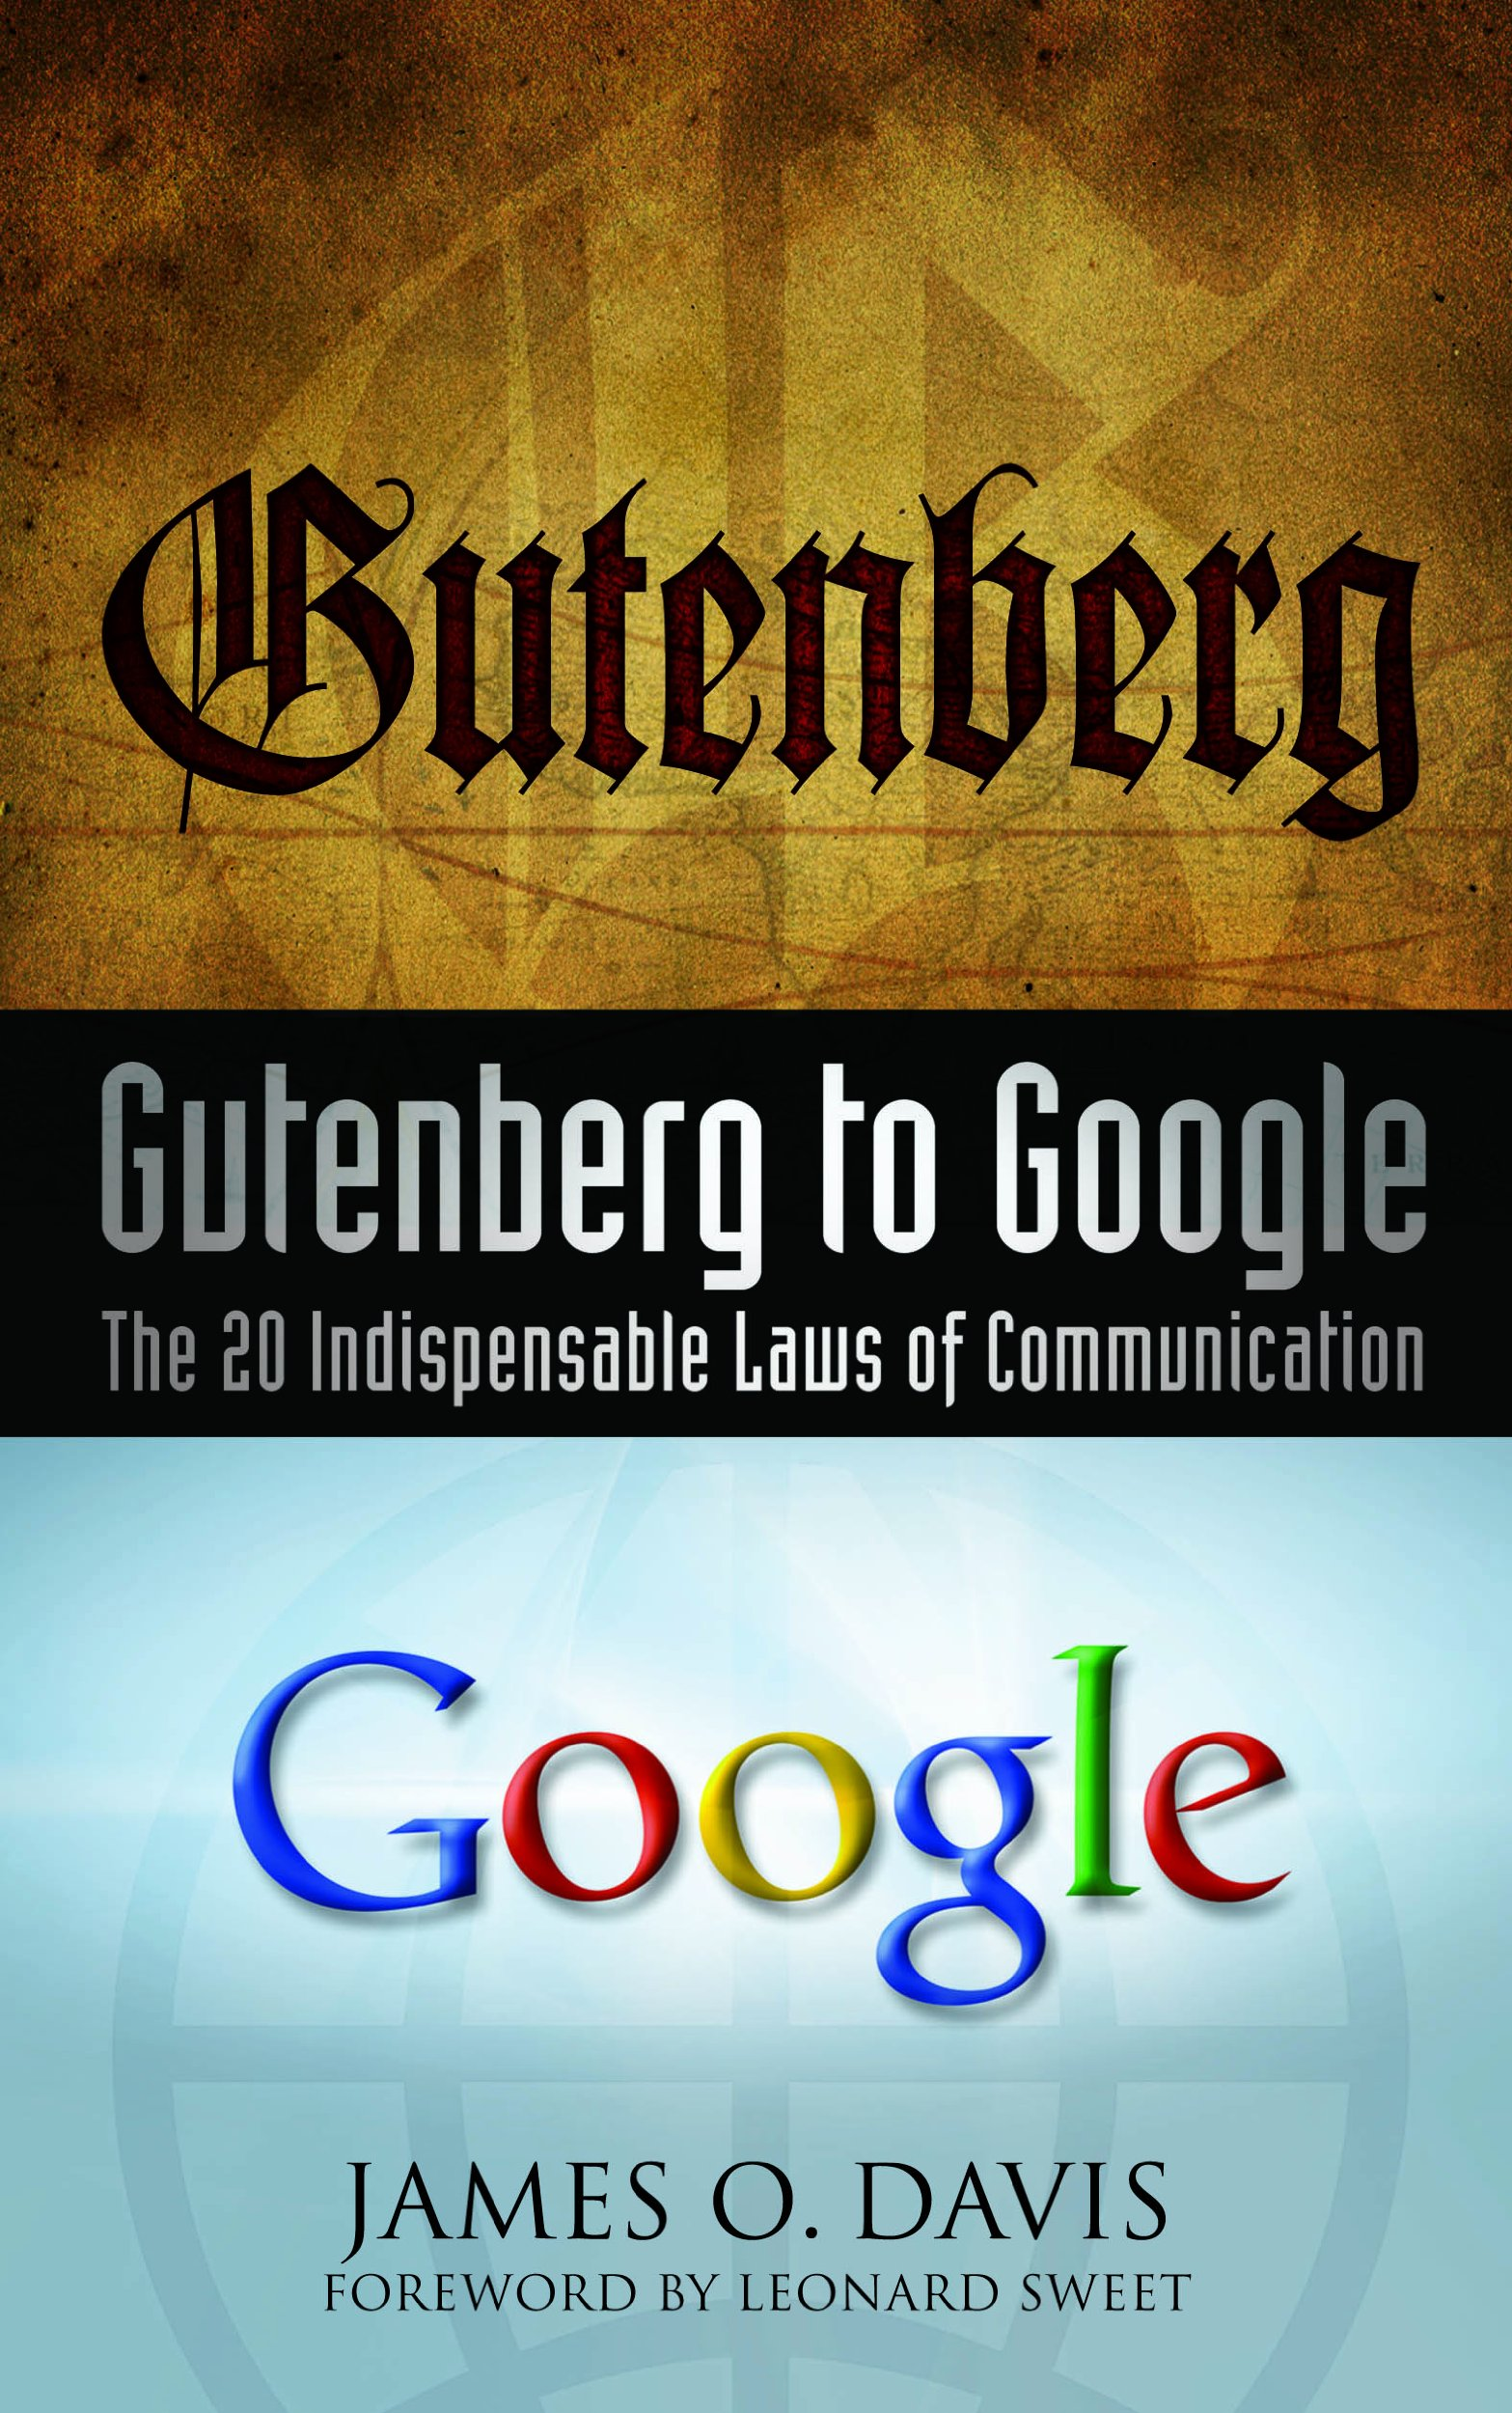 Download Gutenberg to Google: The 20 Indispensable Laws Of Communication PDF